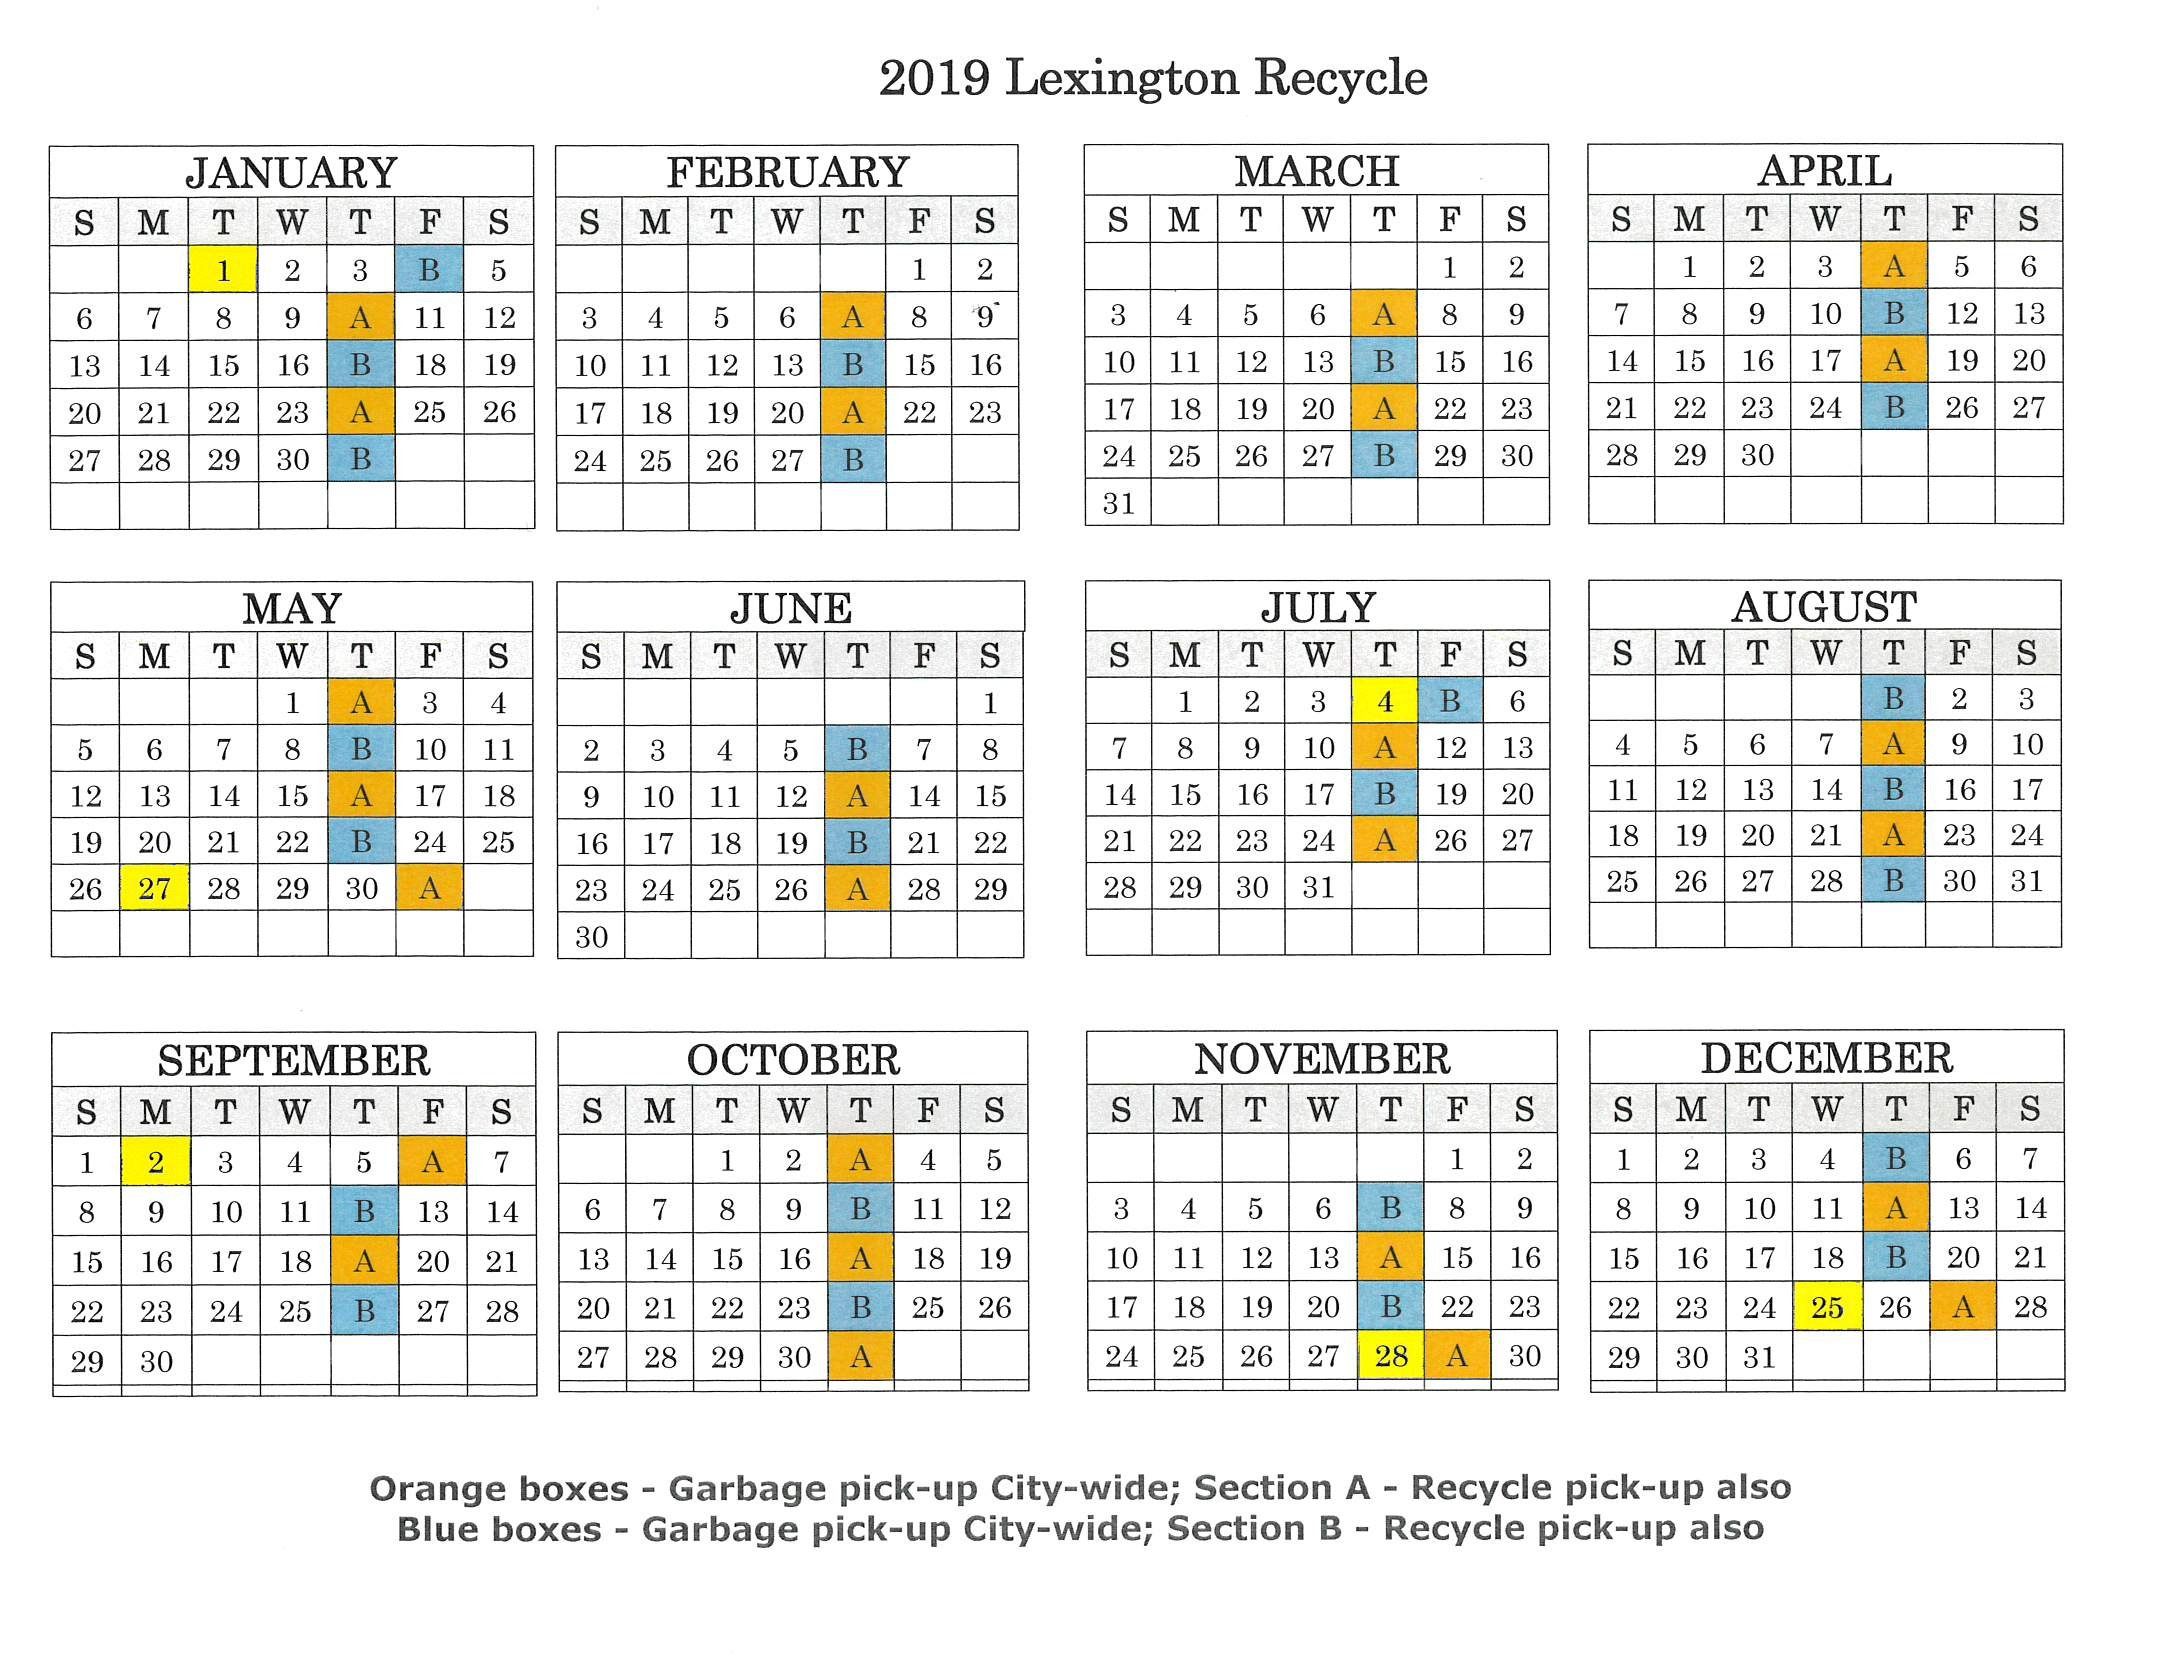 2019 Recycle Map & Calendar - City Of Lexington Lexington 1 Calendar 2019